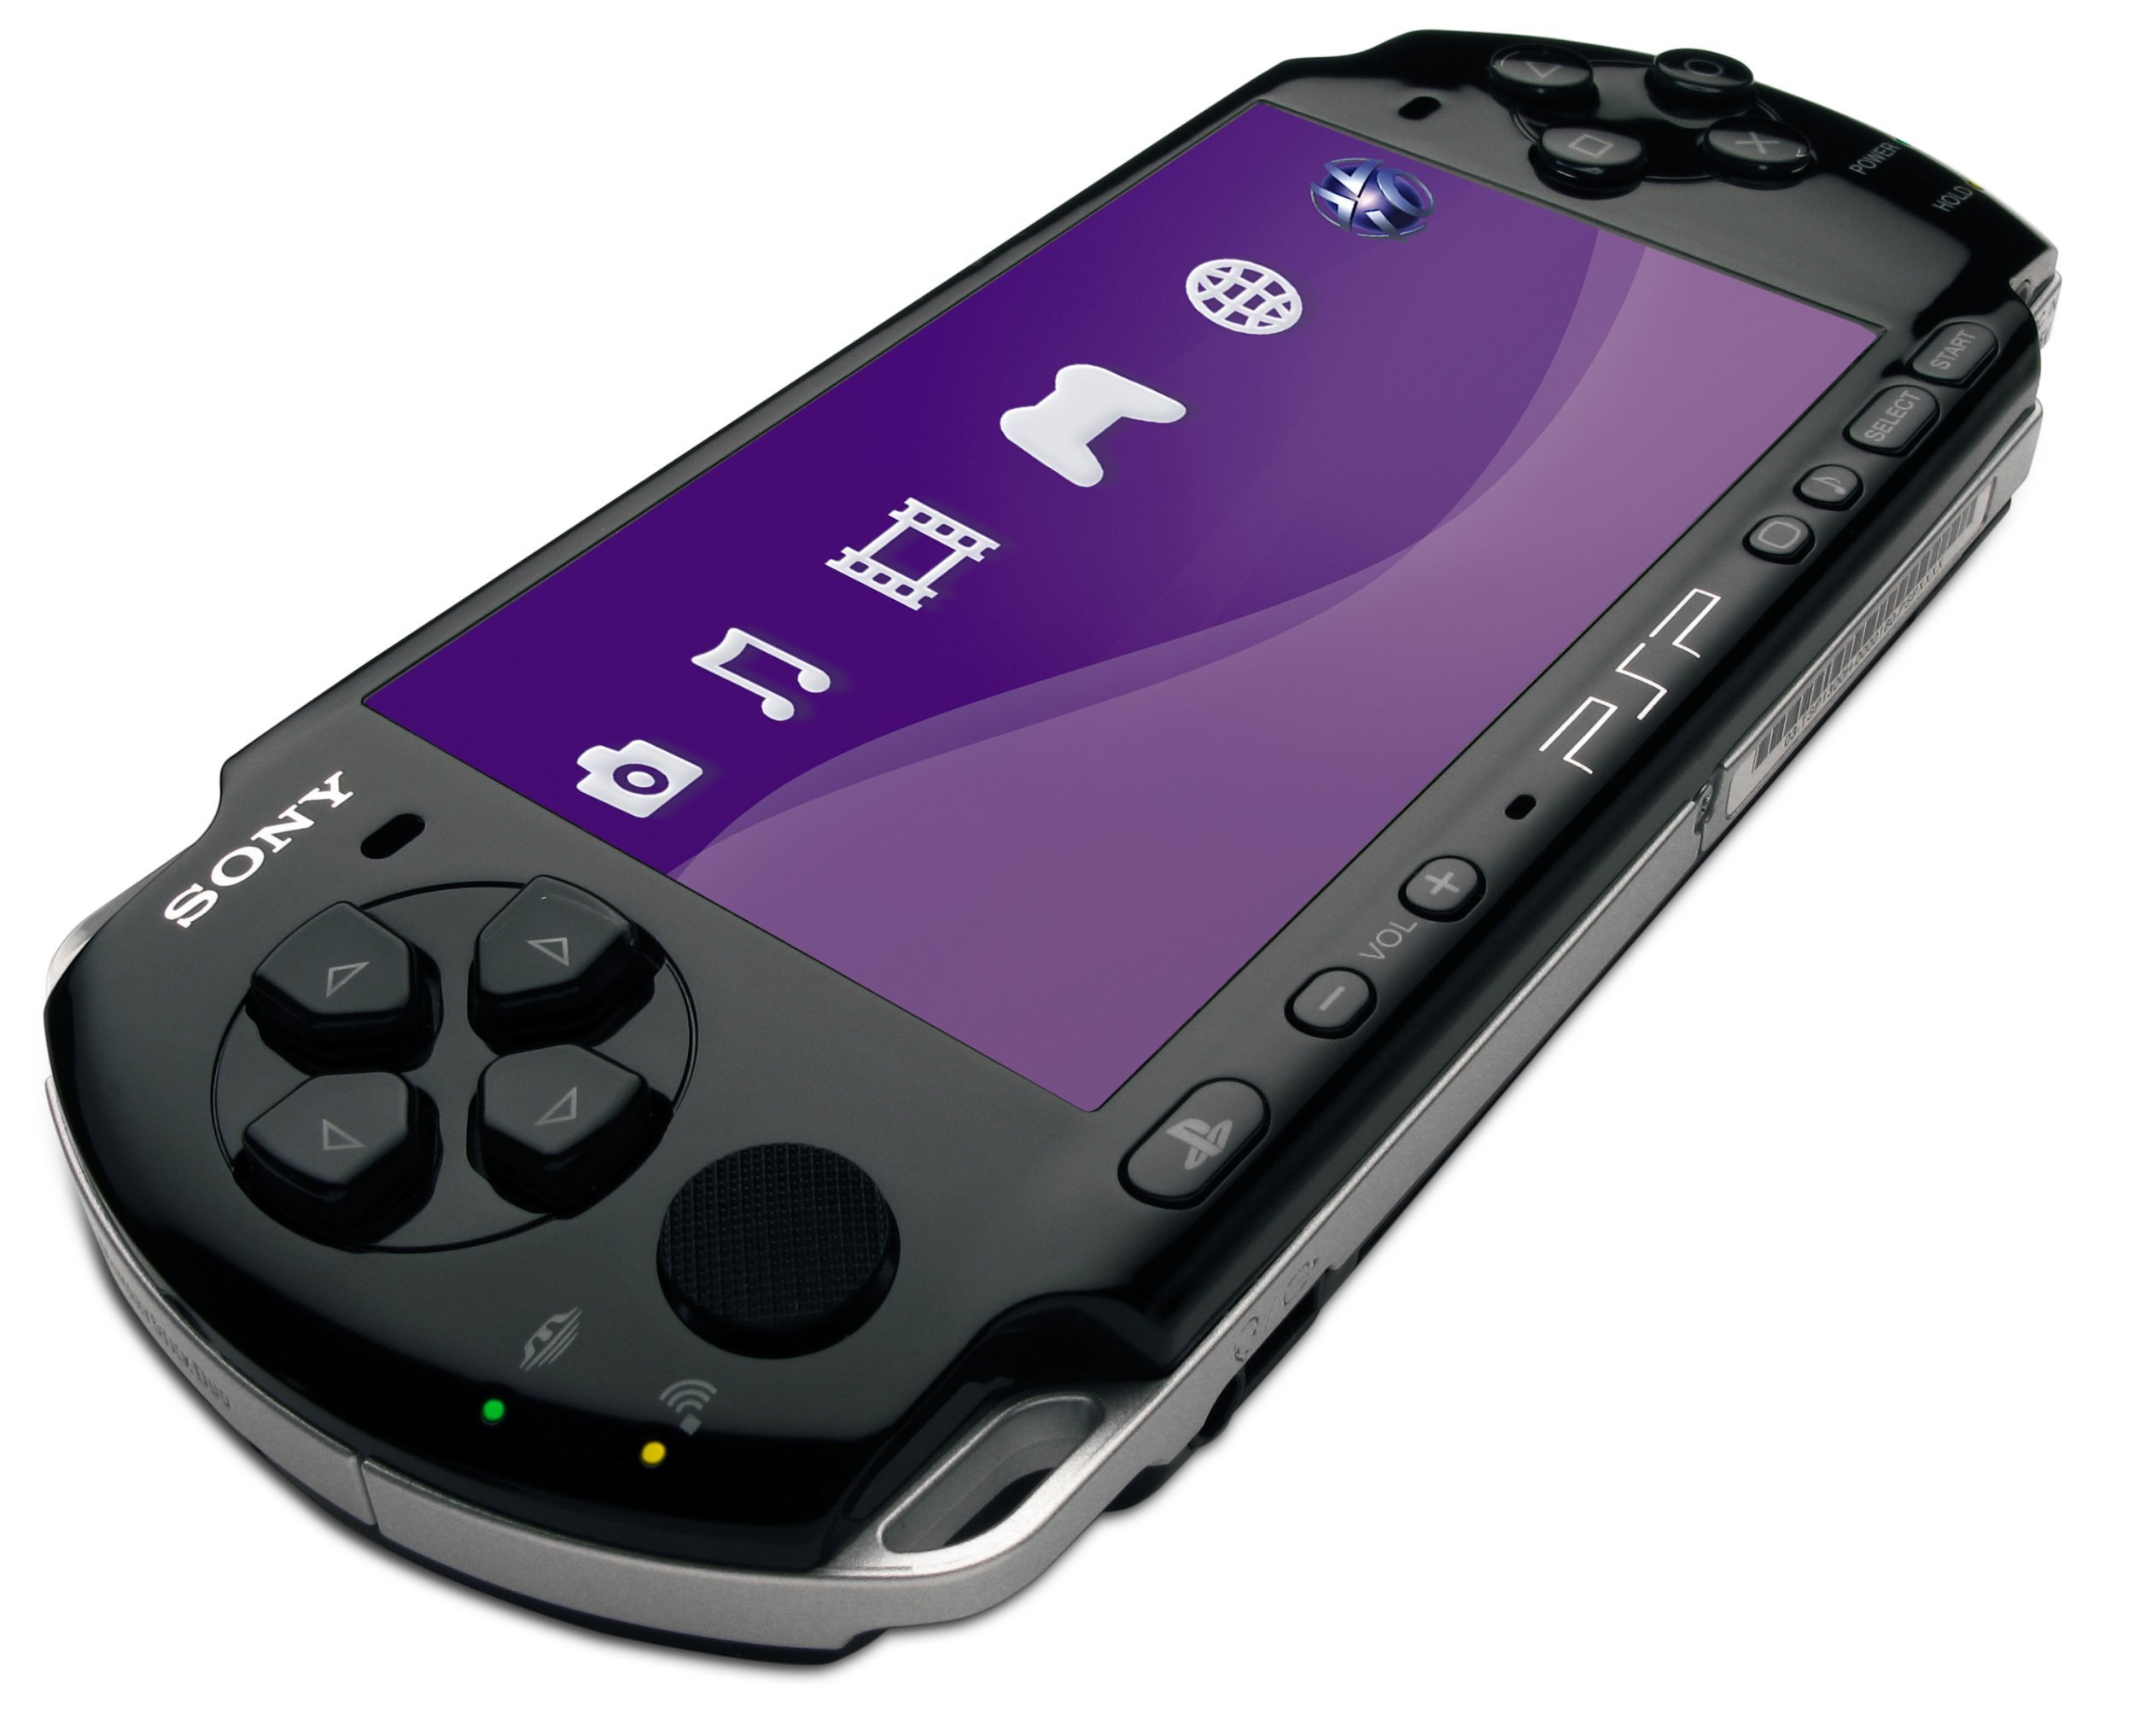 How do you hook up a psp to the internet